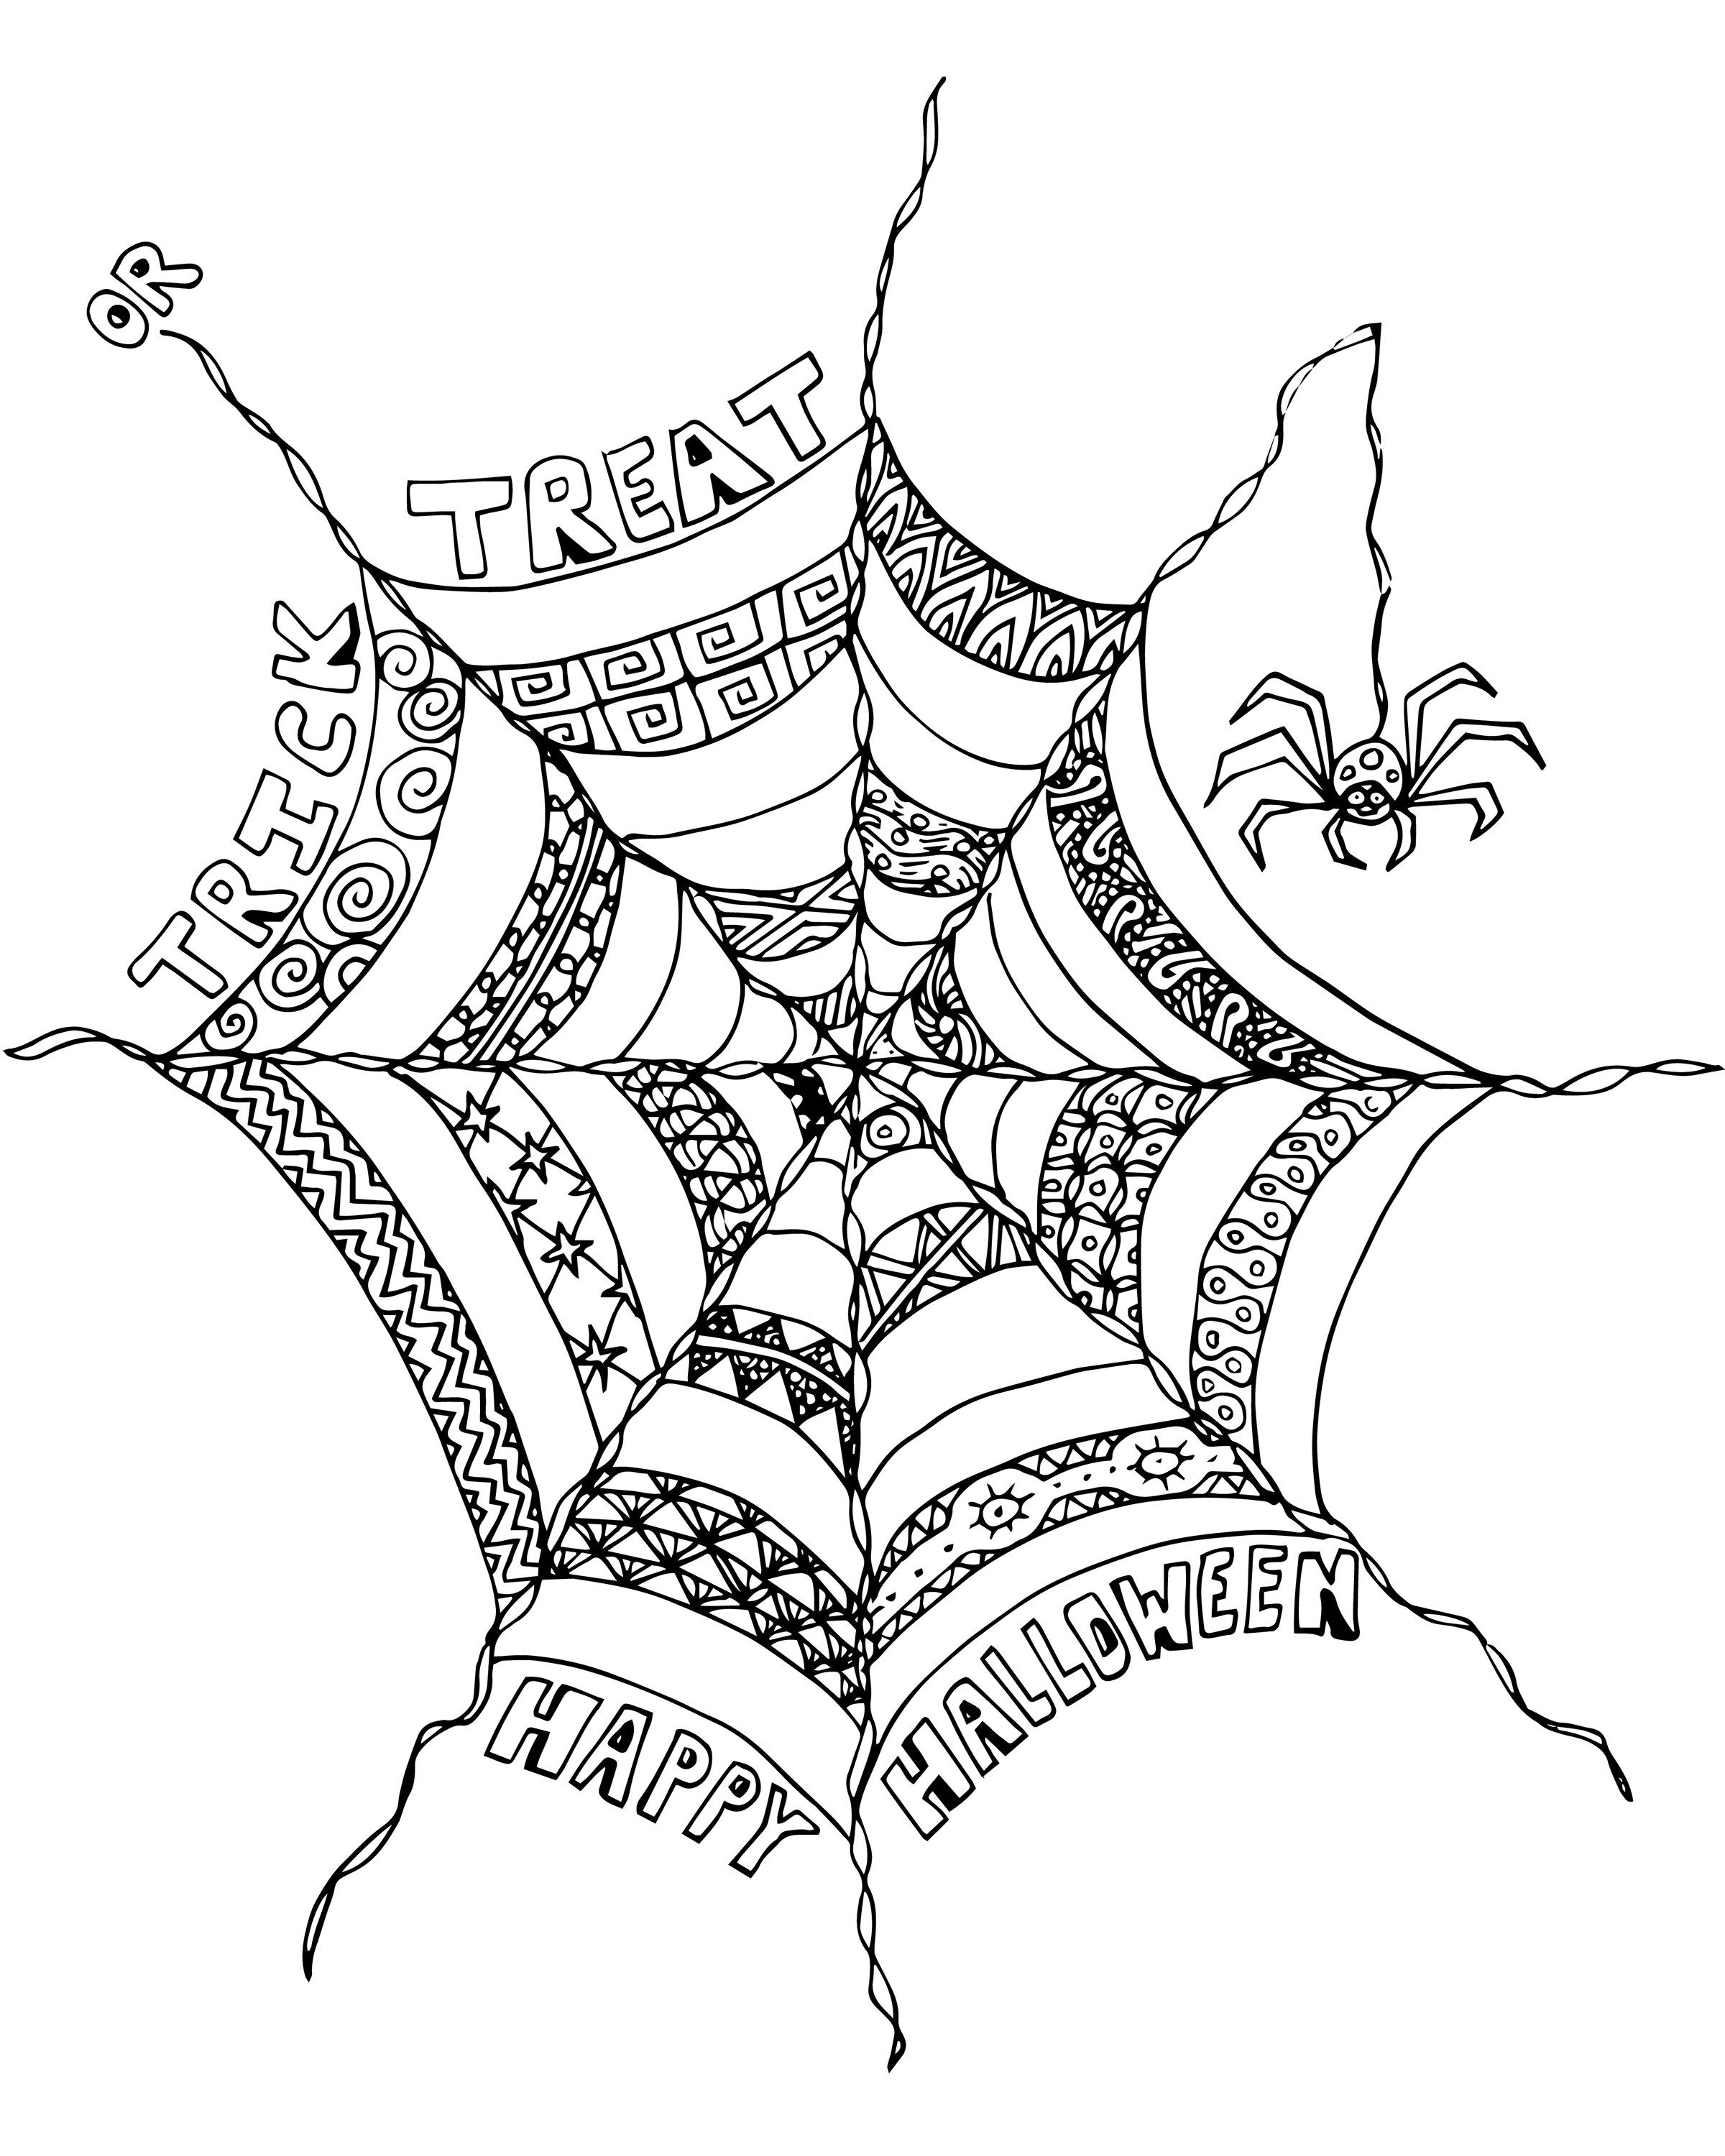 spider web coloring page # 6